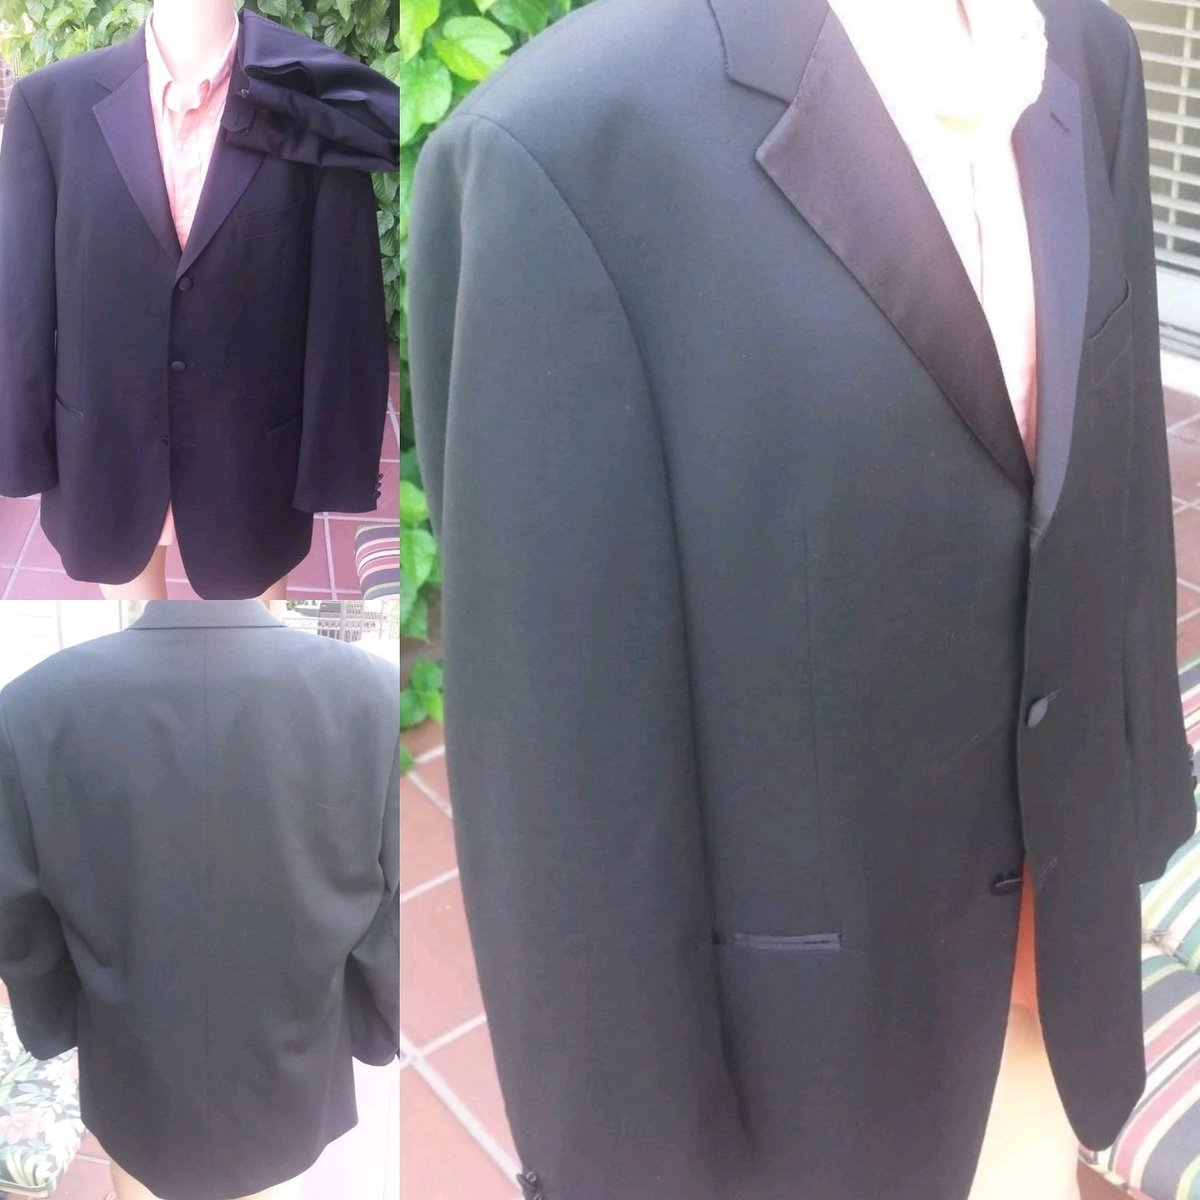 230c6e8dd Check out this Hugo Boss Black Label tuxedo suit. Jacket 42R, pants 36x32,  and in NEW condition with original tags https://ebay.to/2MczXpG #fashion # tuxedo ...